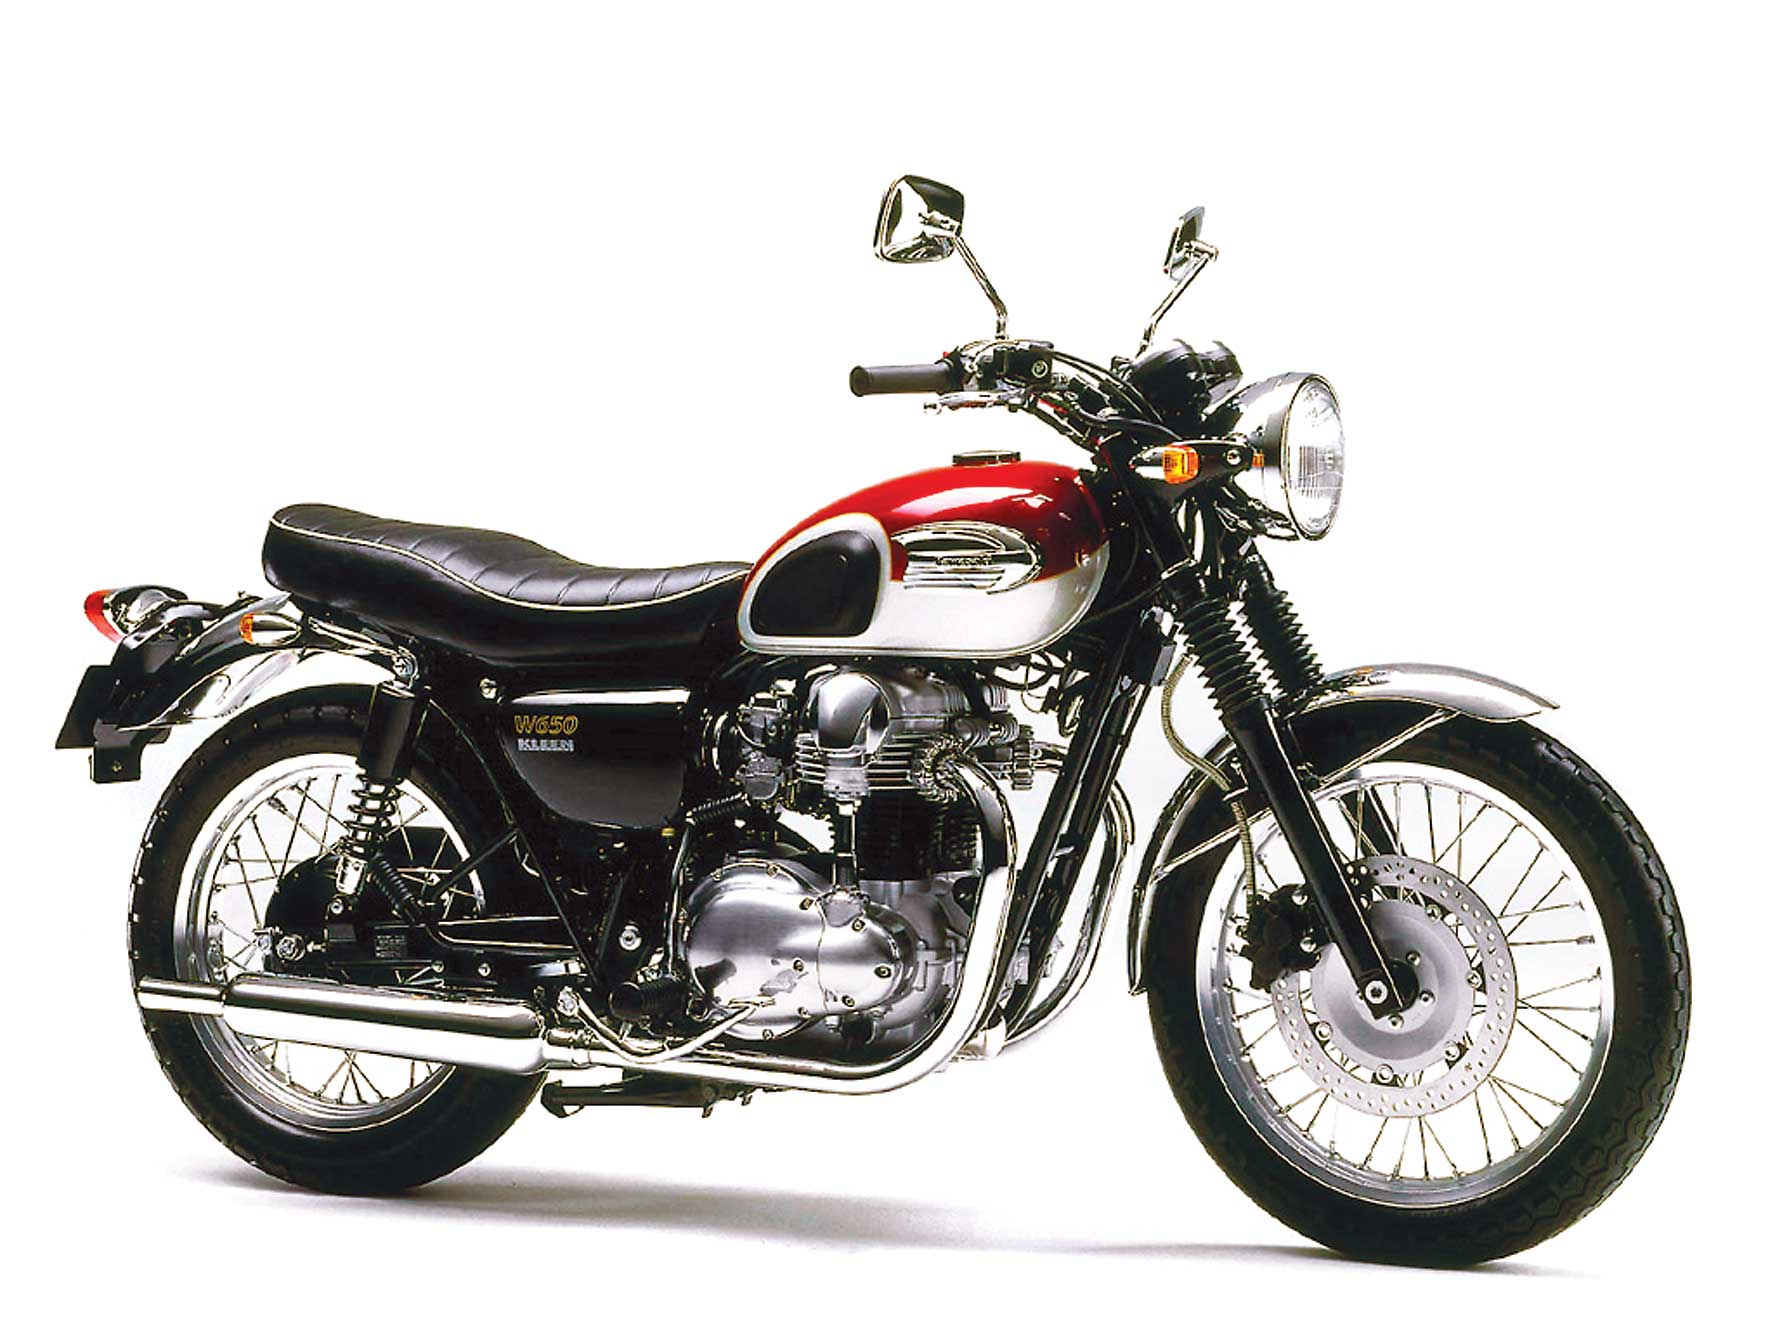 Kawasaki W 650 1999 wallpapers #134645